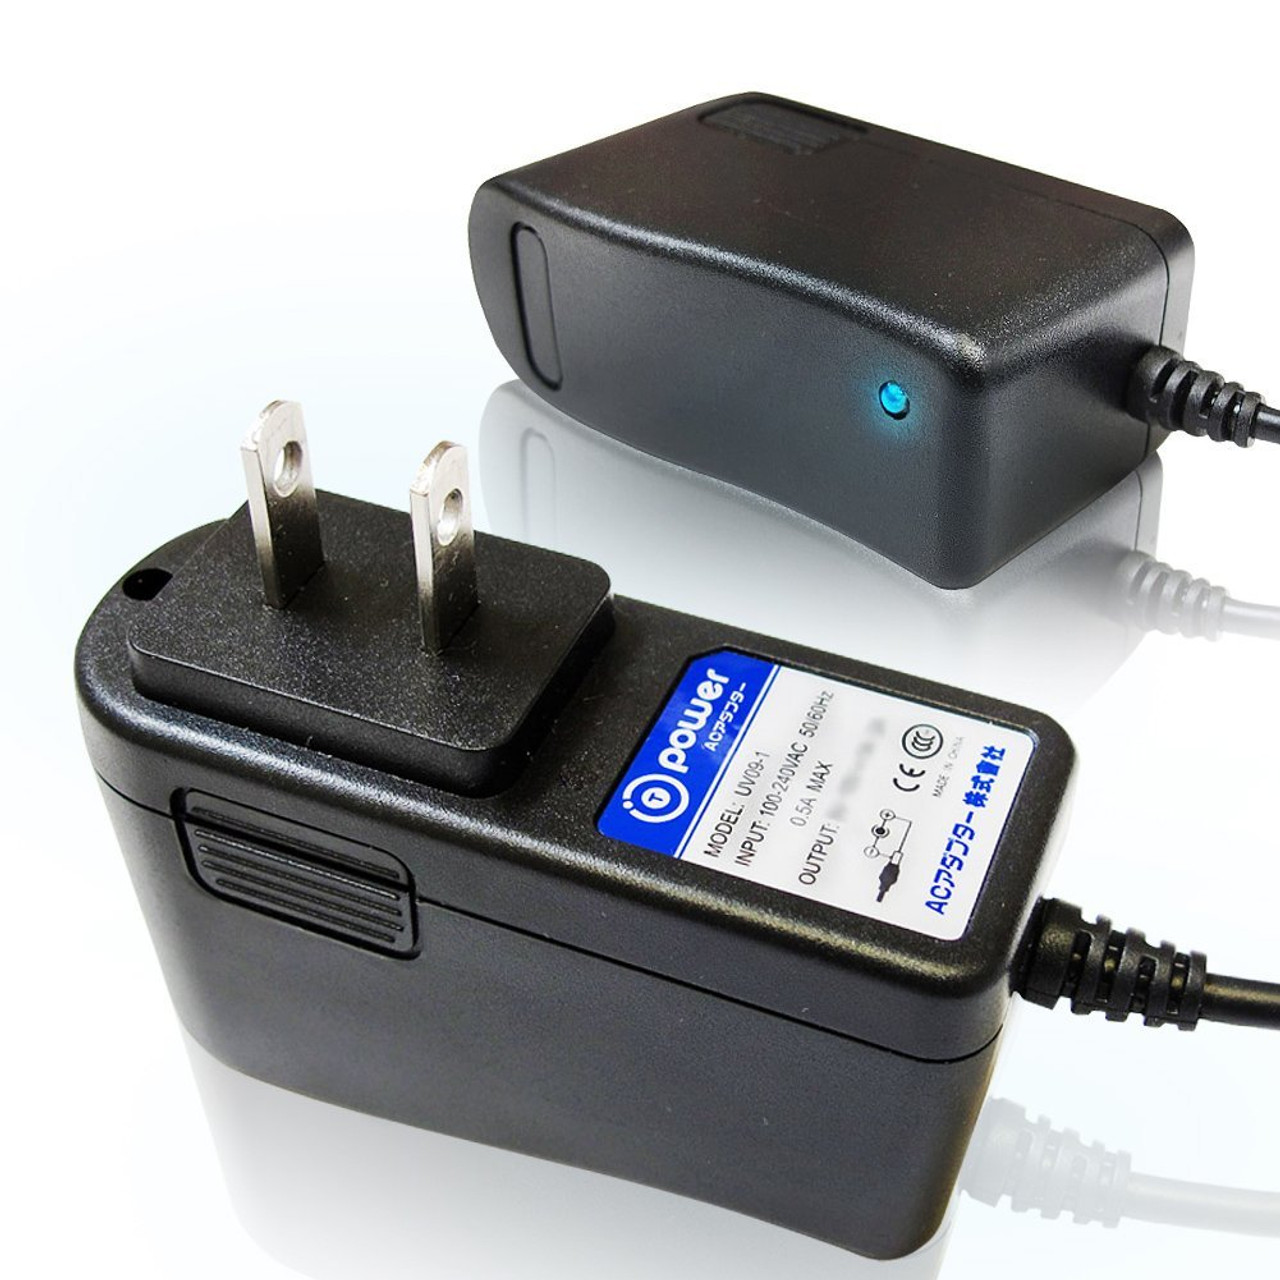 AC Adapter For Brother P-Touch PT-1960 PT-1900 Labeler Power Supply Charger